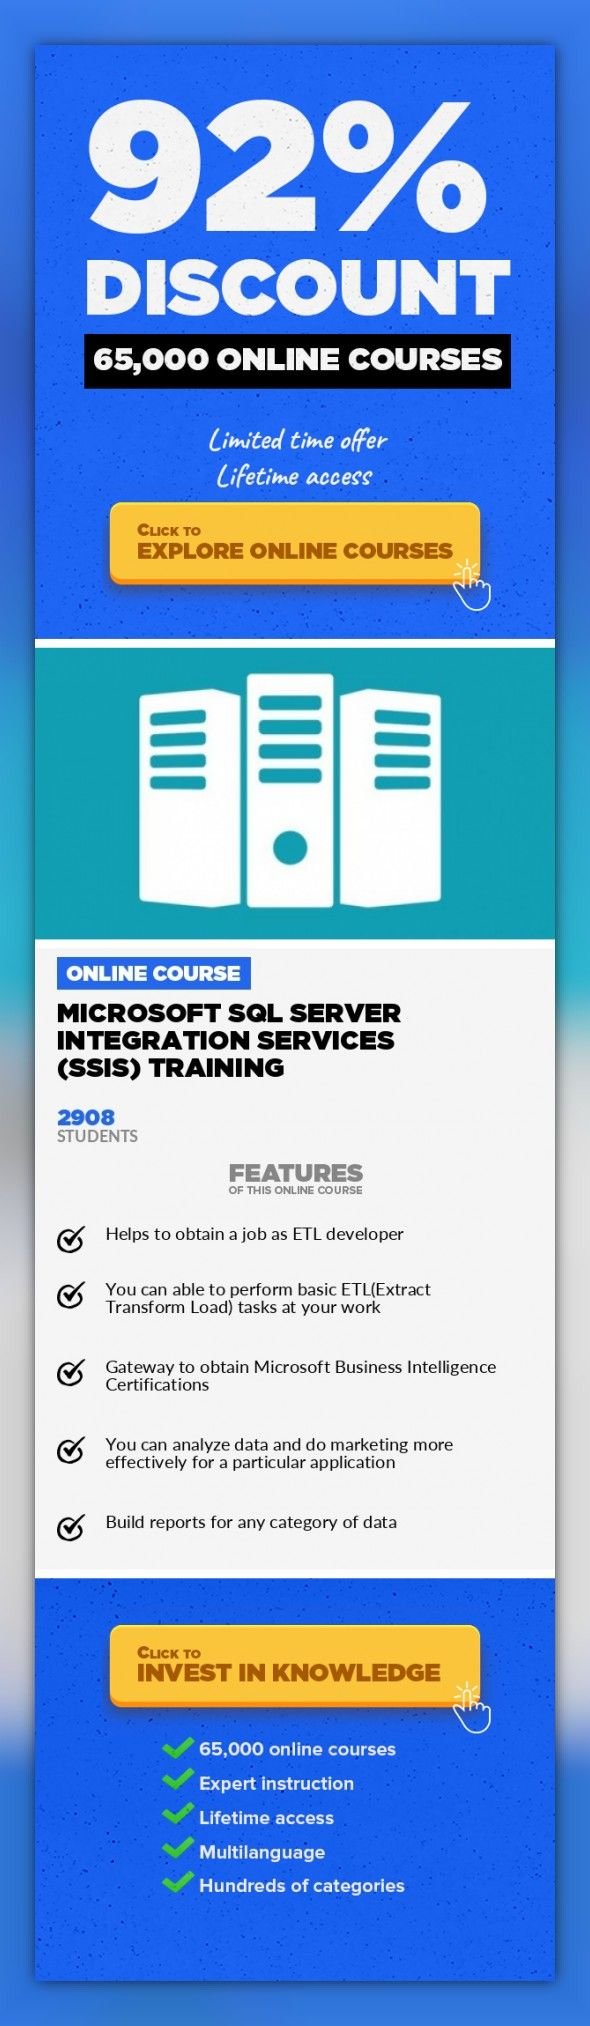 Microsoft Sql Server Integration Services Ssis Training It